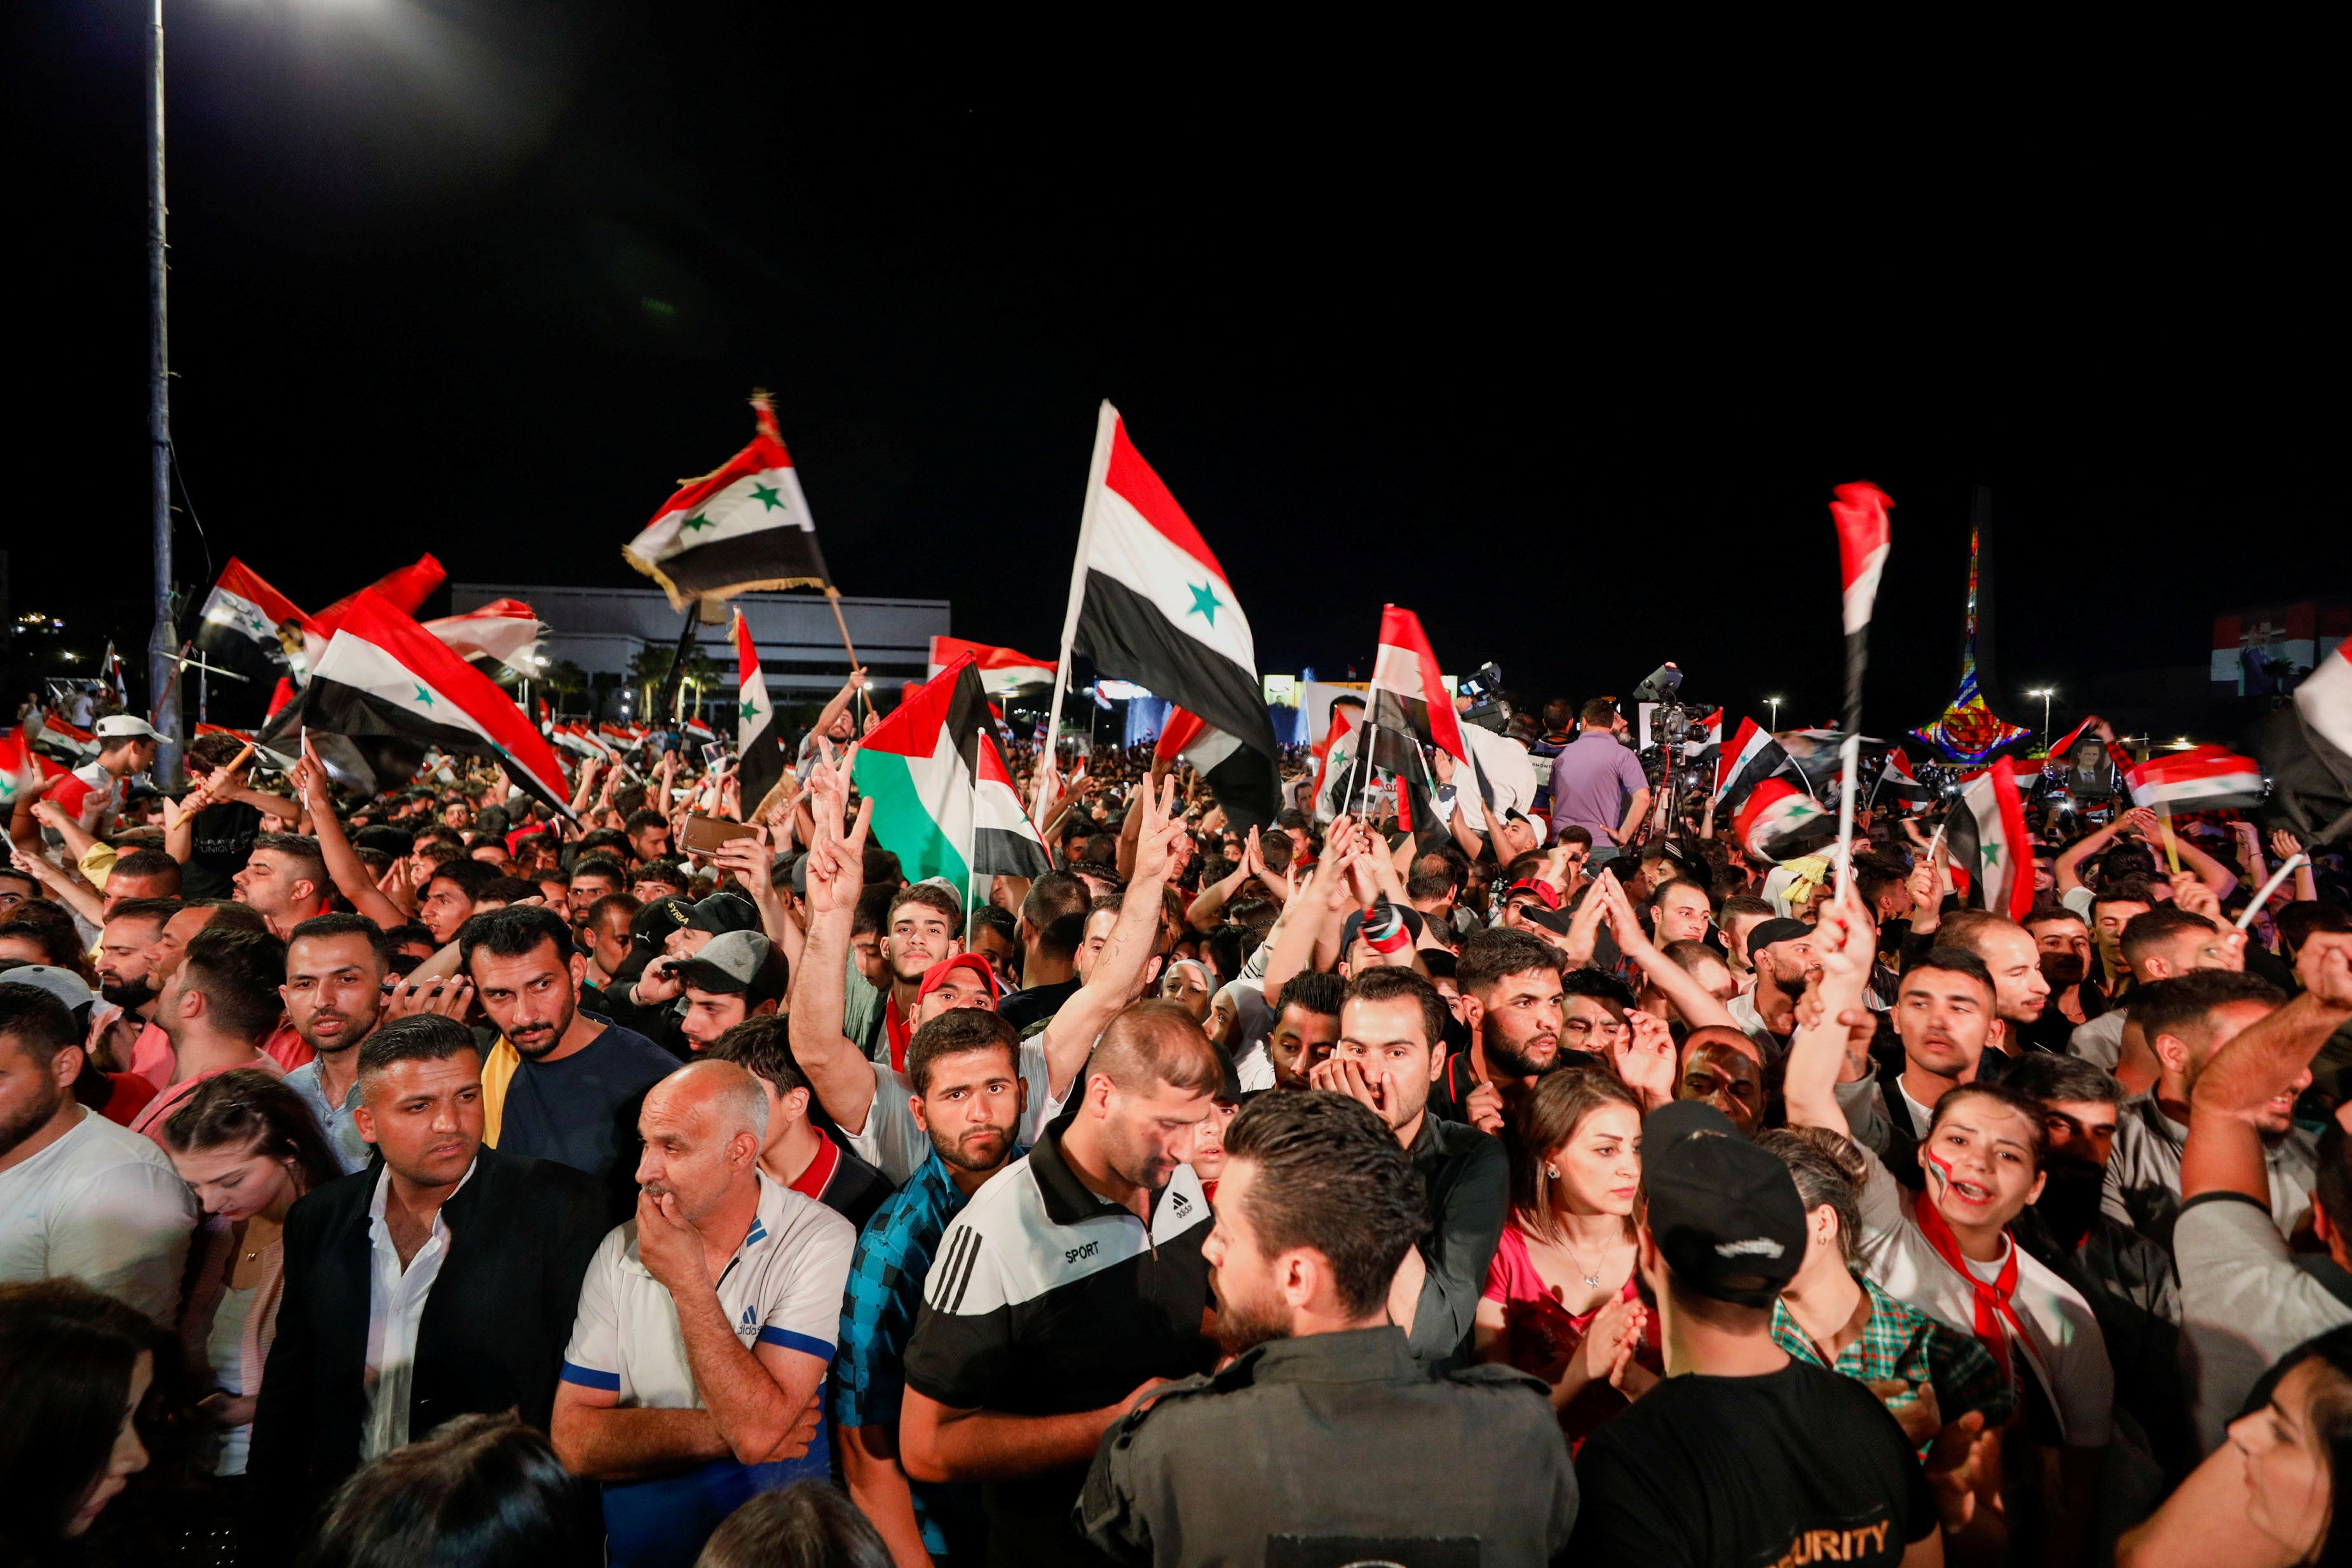 Supporters of Syria's President Bashar al-Assad celebrate before the results of the presidential election in Damascus, Syria, May 27, 2021. REUTERS/Omar Sanadiki